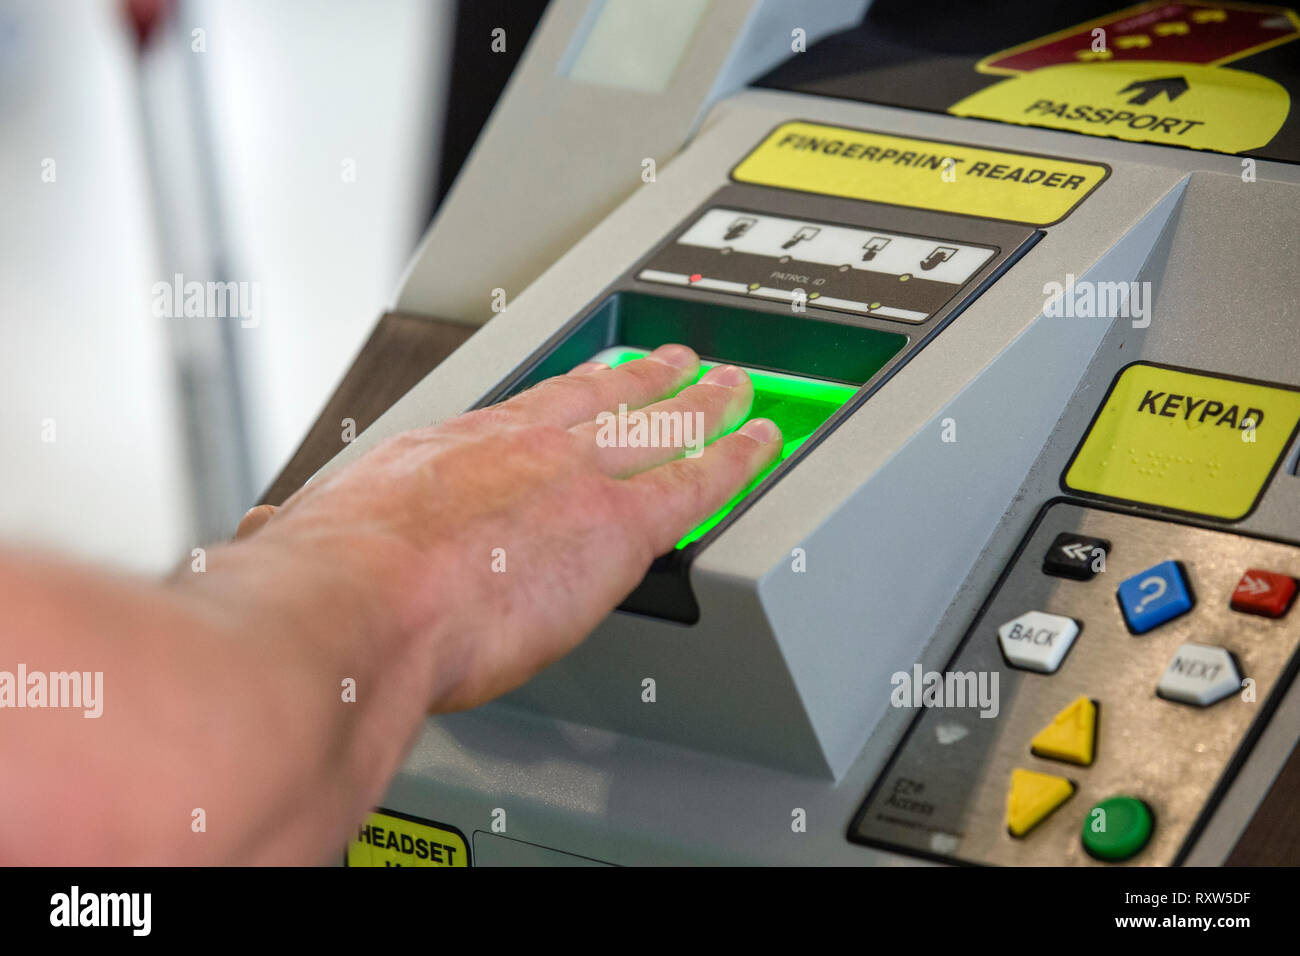 United States Customs and Border Protection (USCBP) scan the finger prints of arrivals at Miami International Airport in Miami, Florida. See more information below.; - Stock Image